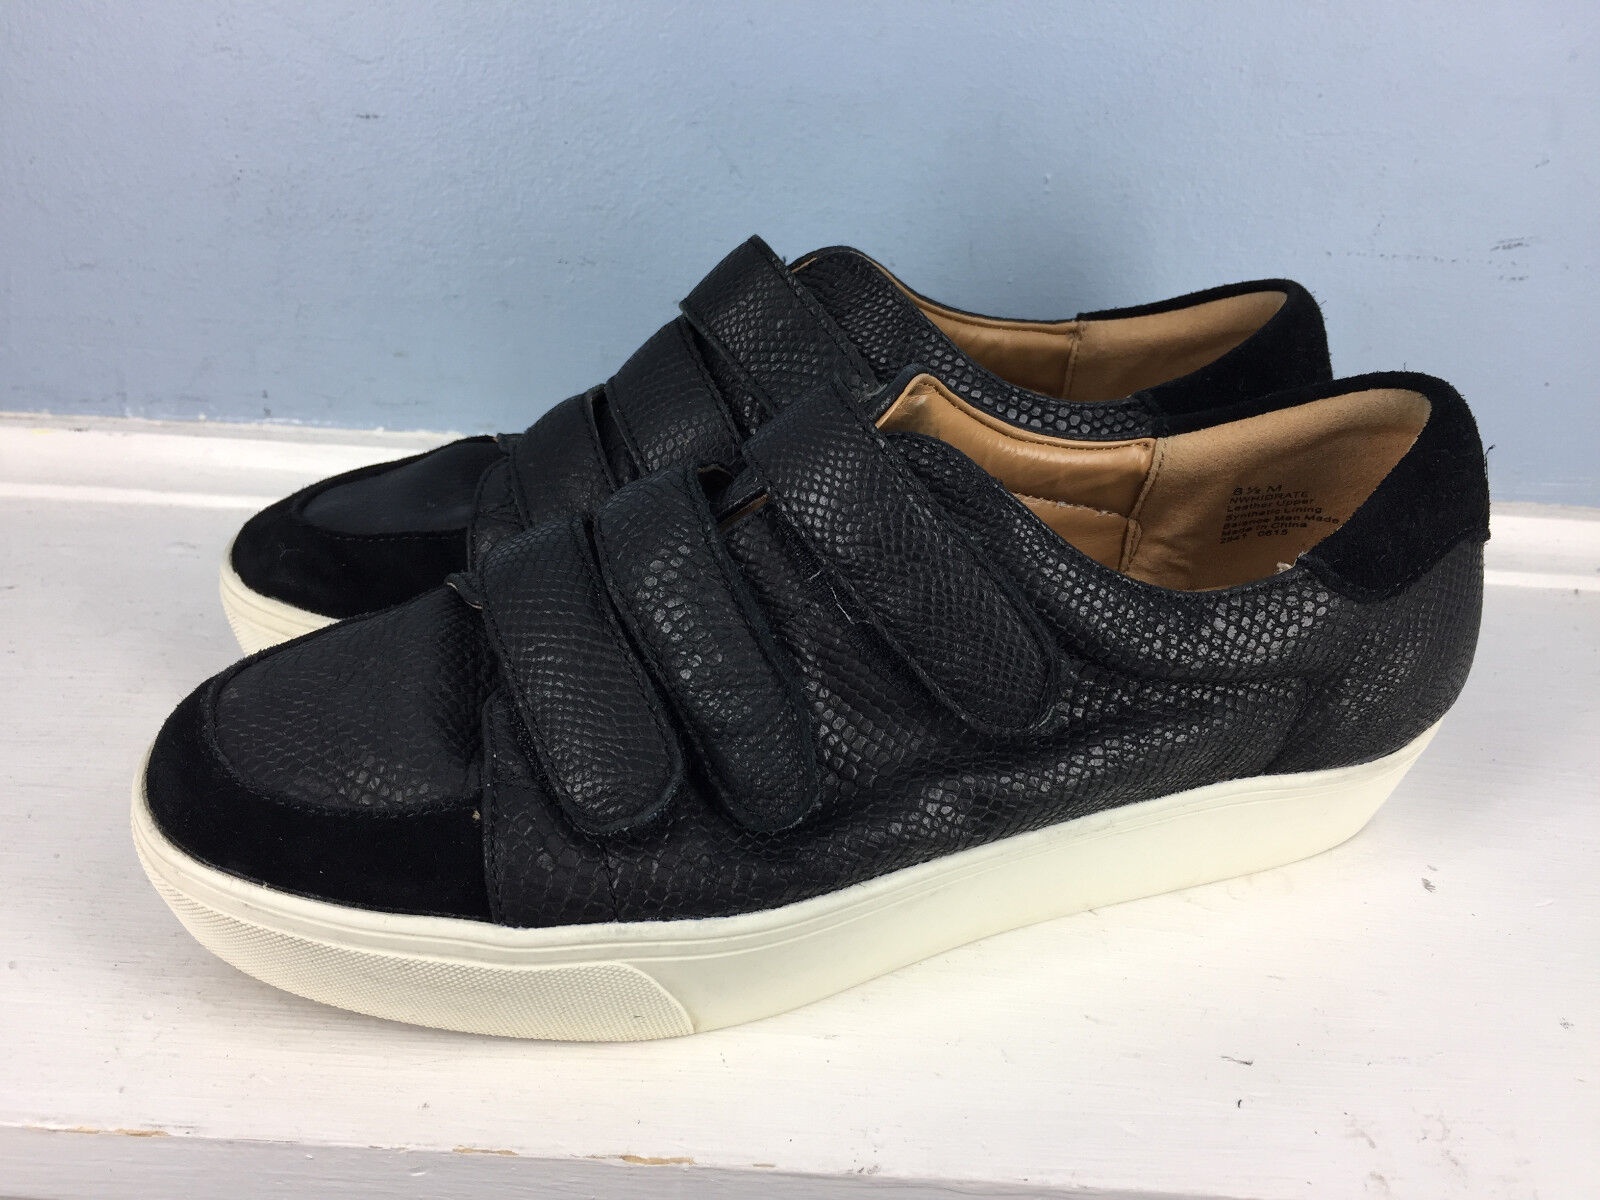 Nine West Hidrate Women 8.5 Platform Black Fashion Sneakers Repitle Platform 8.5 Leather EUC ea745f